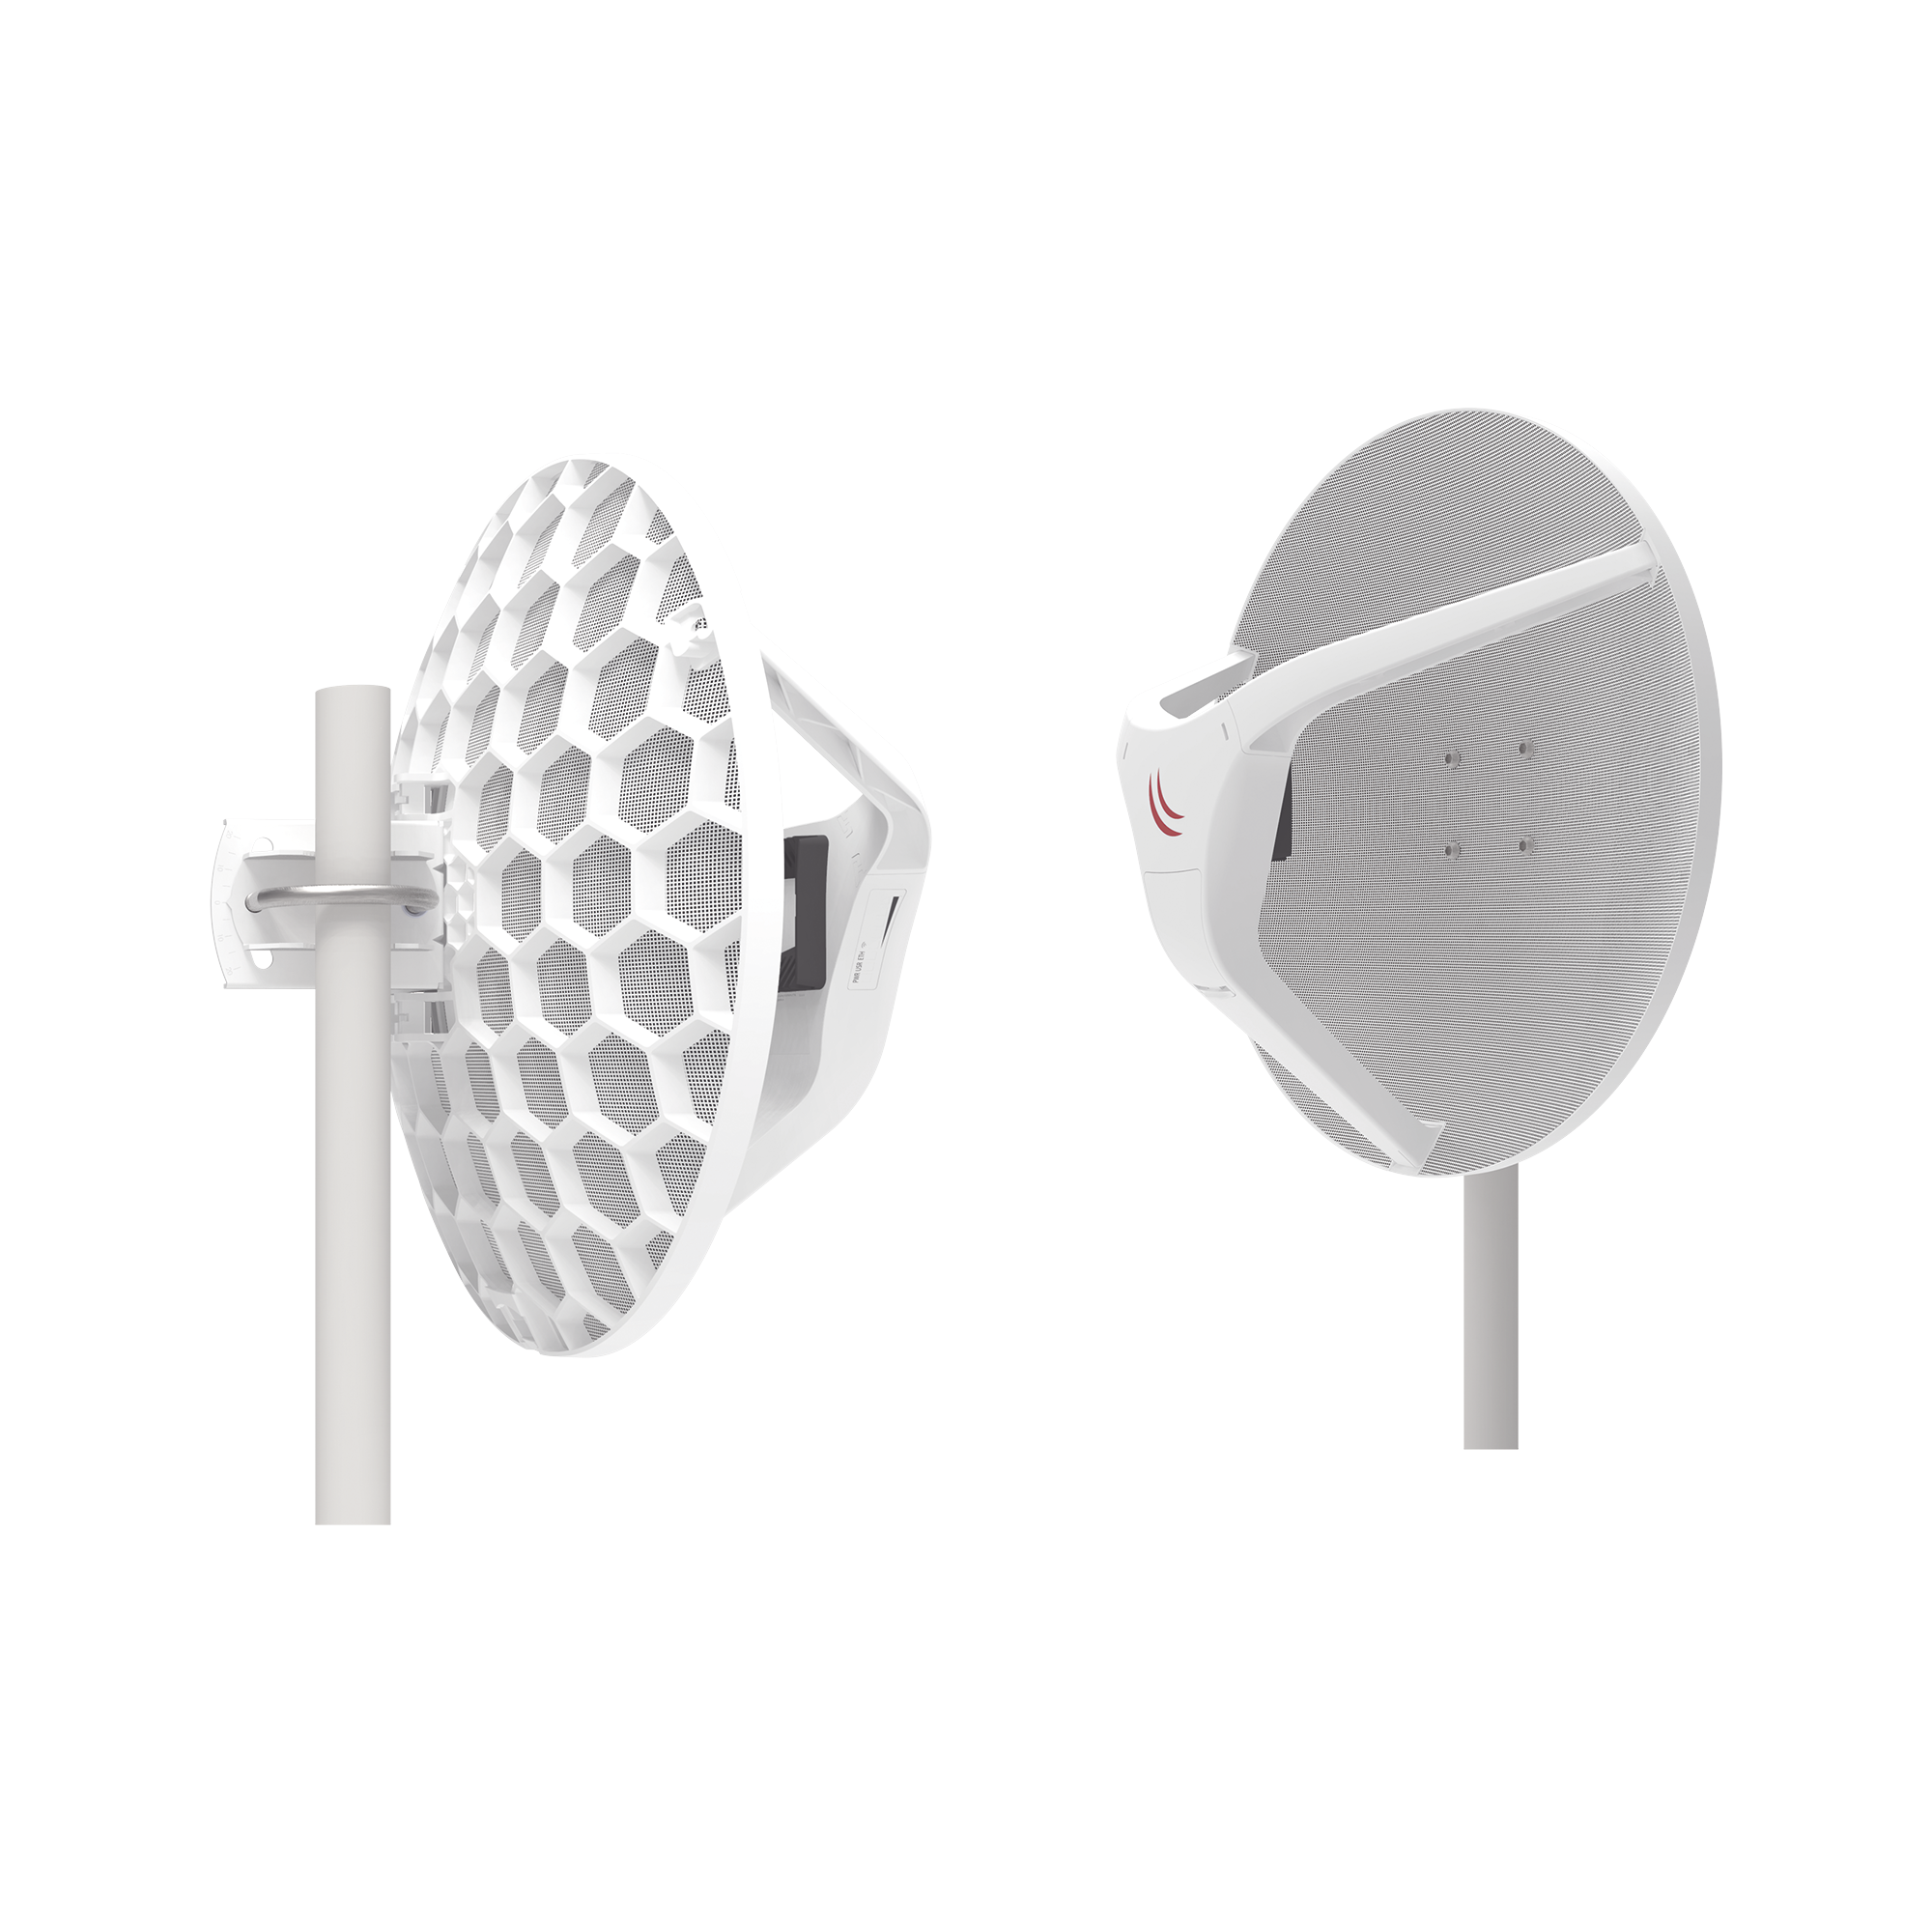 (Wireless Wire Dish) Enlace completo de 60GHz, Hasta 2Gbps, Listos para Conectarse